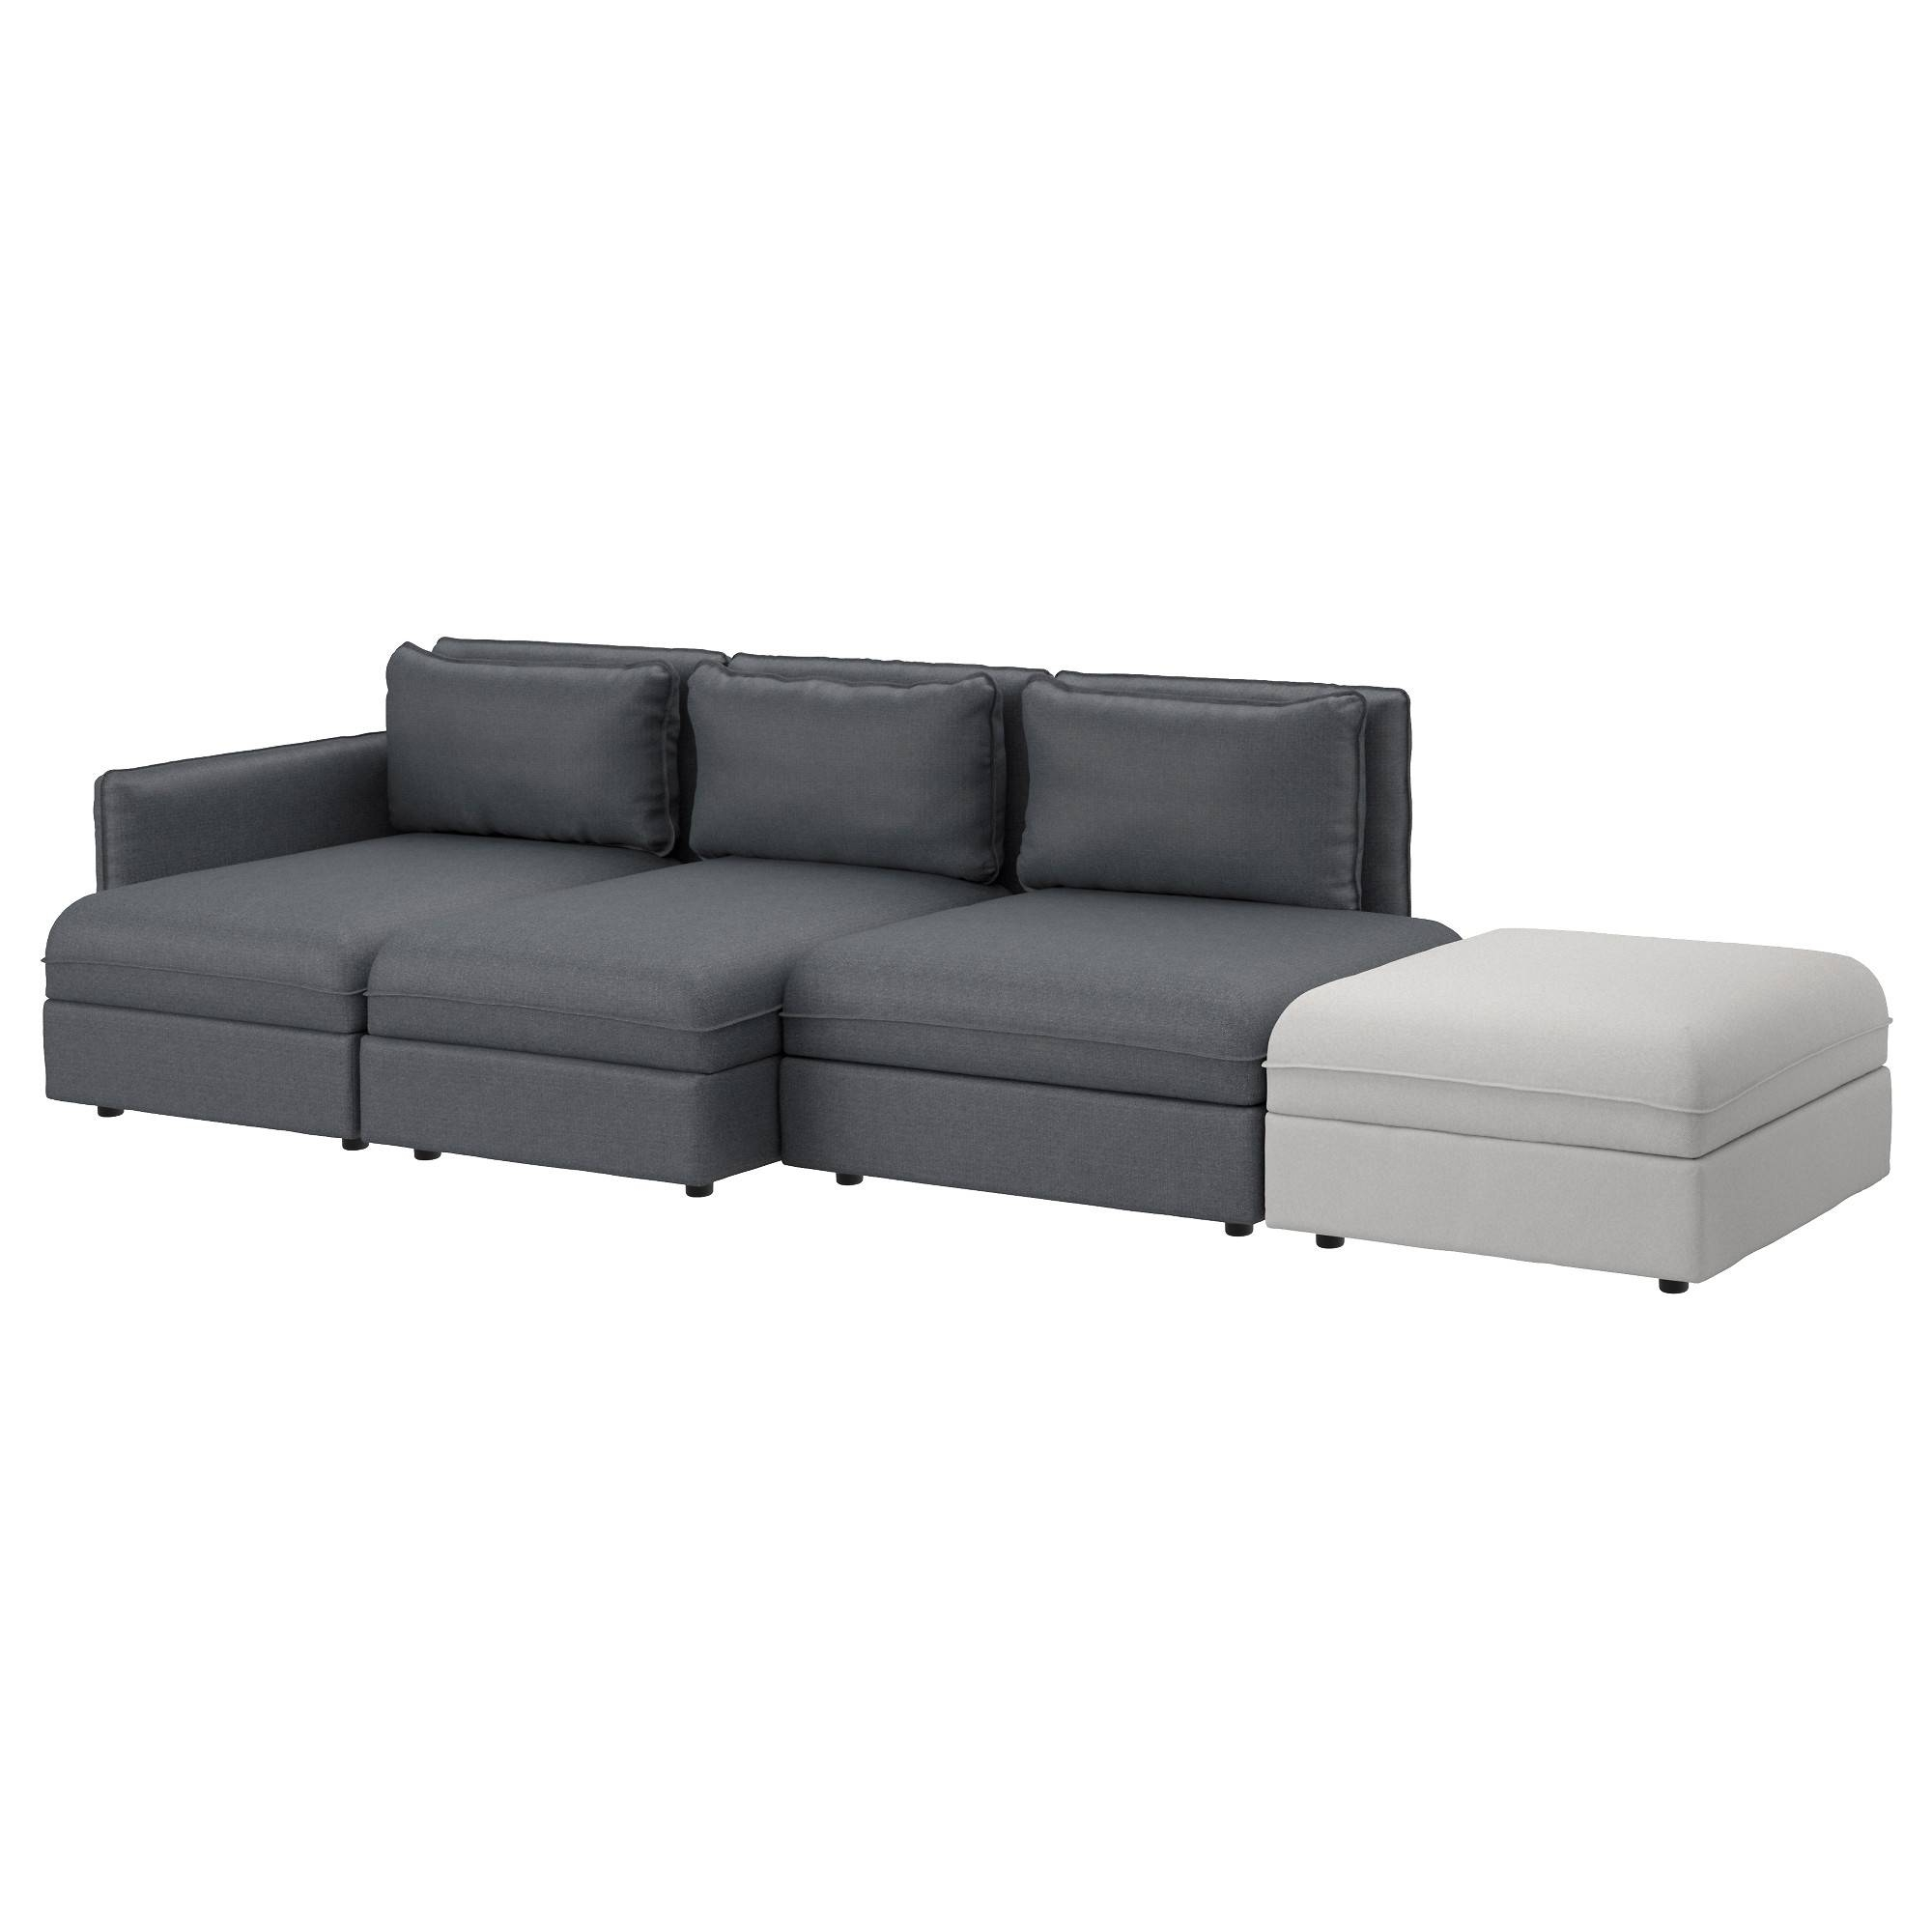 Vallentuna Series - Ikea throughout Single Chair Sofa Bed (Image 29 of 30)